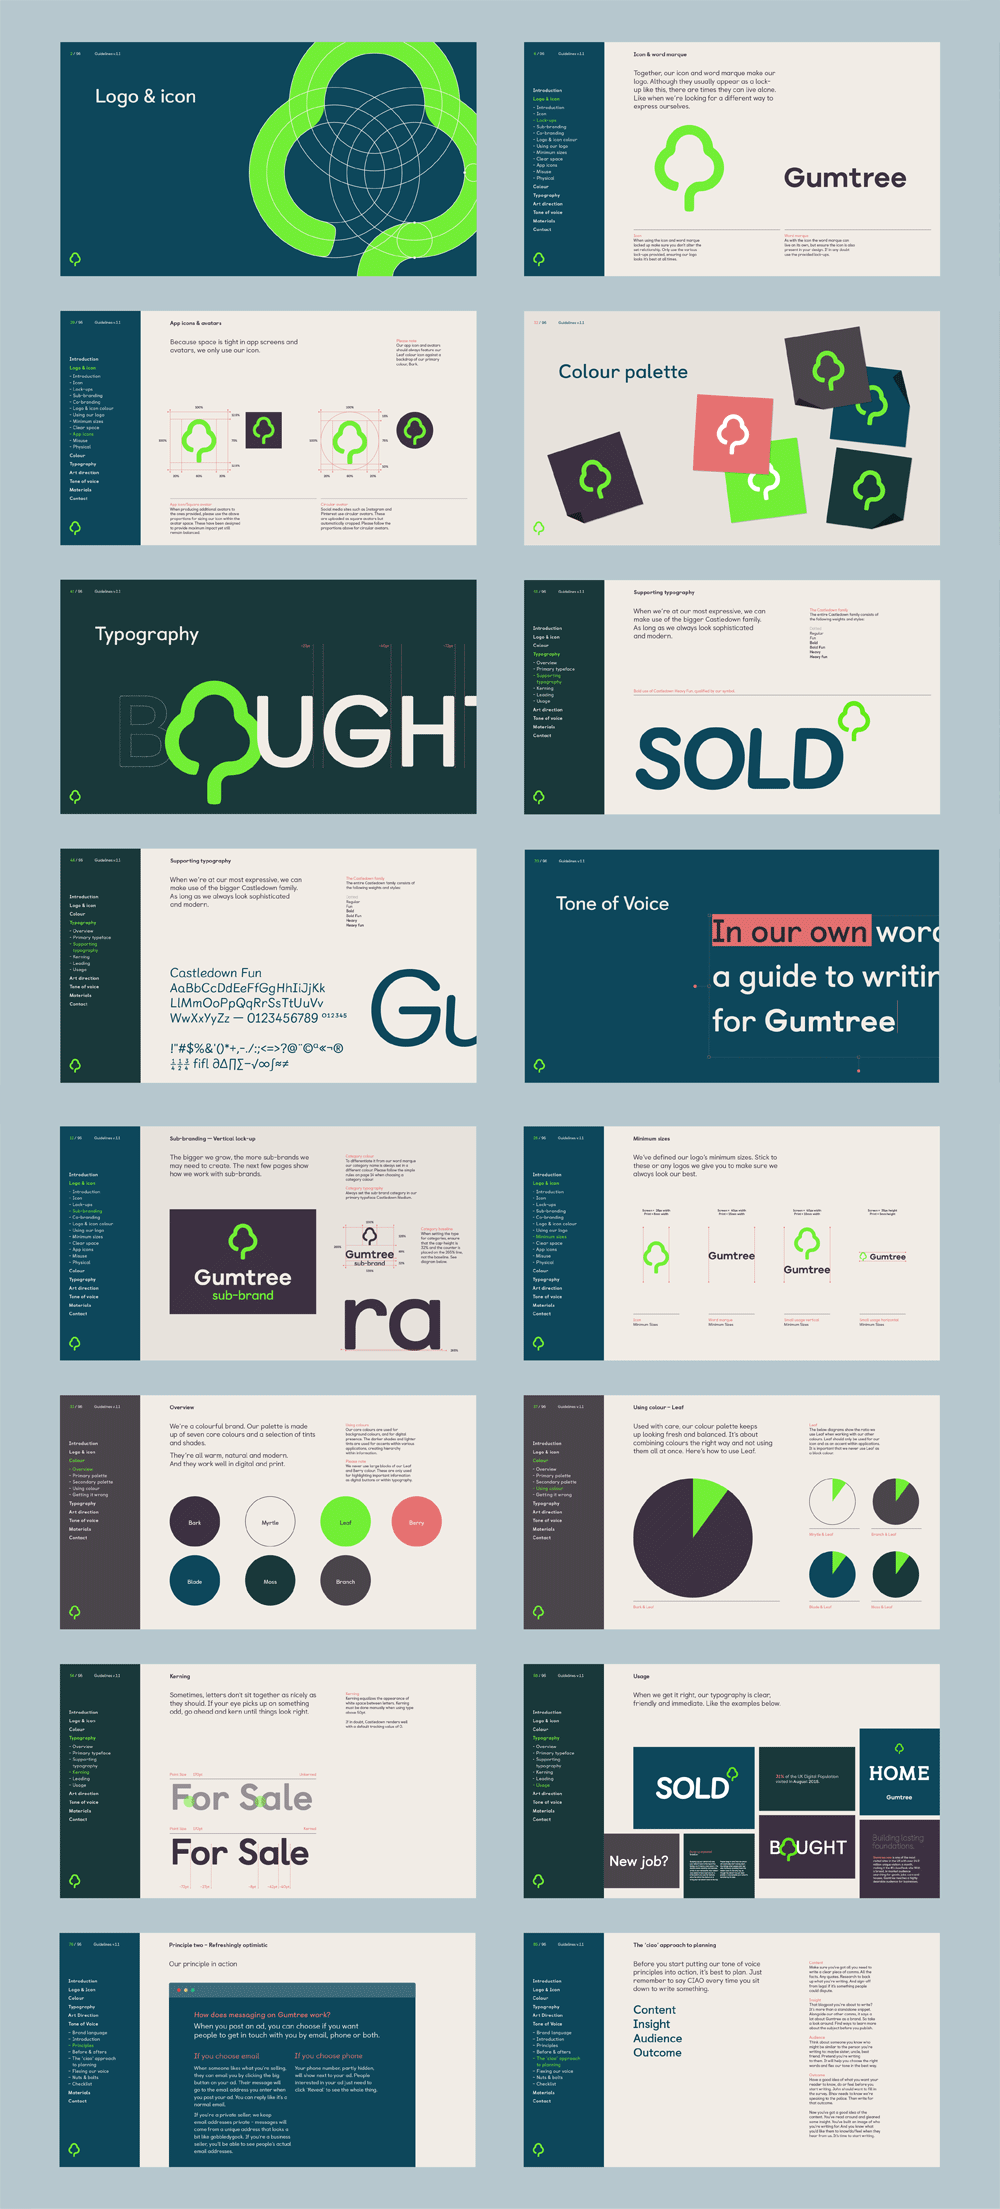 Brand Identity Guideline Pages Brand New New Logo And Identity For Gumtree By Koto Brand Identity Guidelines Brand Book Brand Guidelines